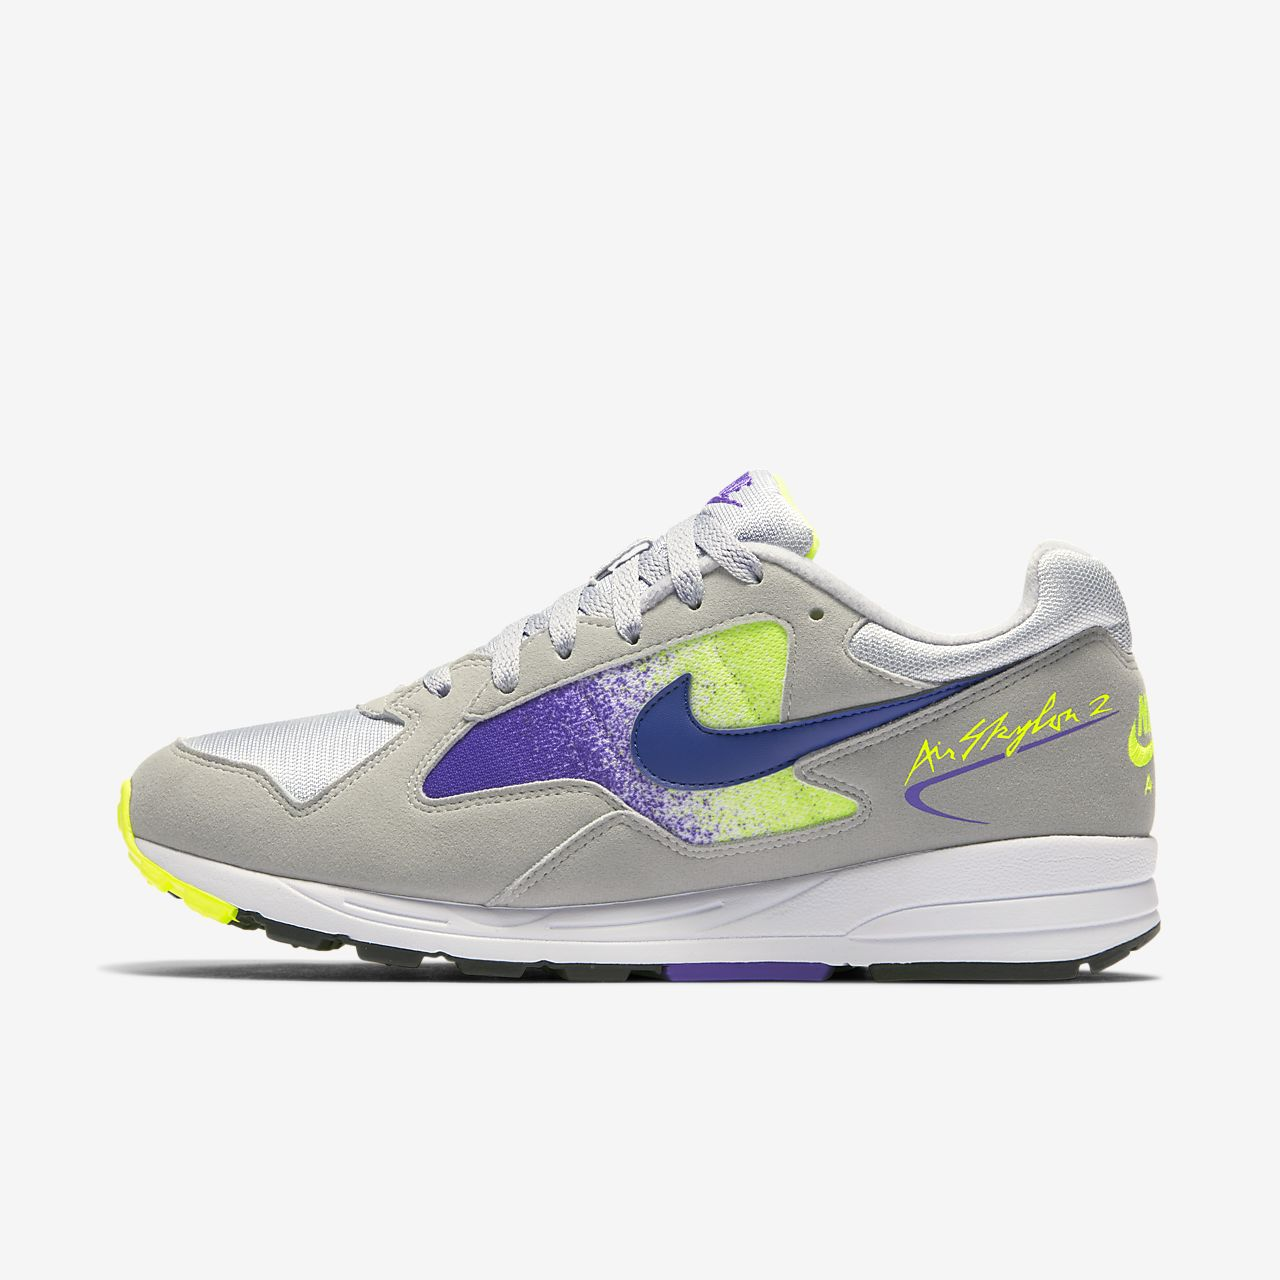 Nike Air Skylon II Men's Shoe